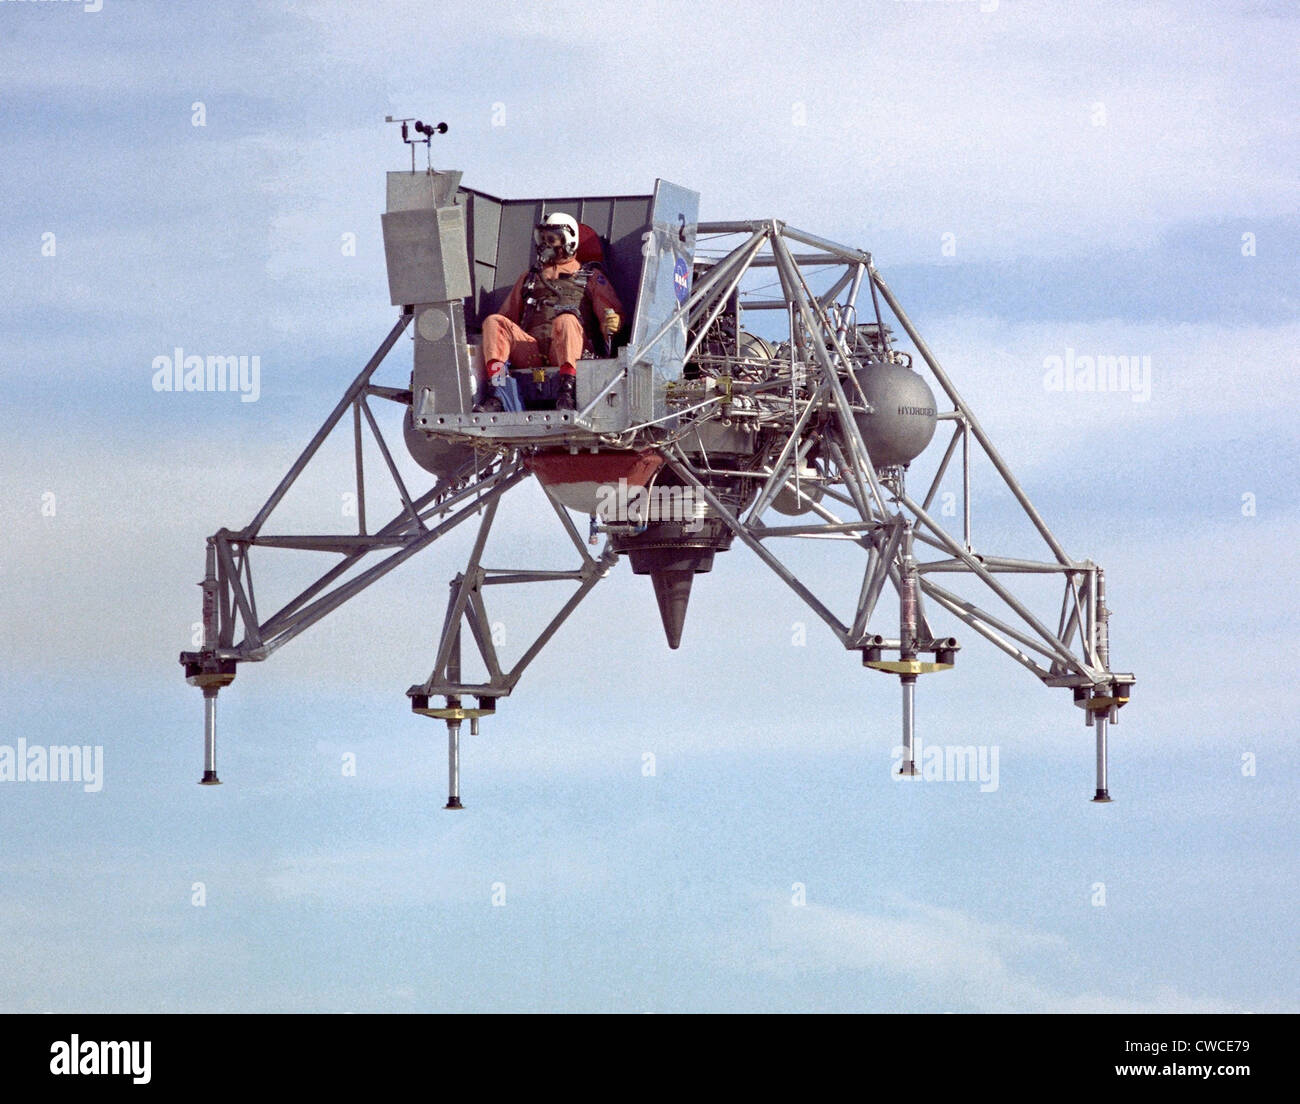 apollo-projects-prototype-of-the-lunar-landing-module-in-an-early-CWCE79.jpg